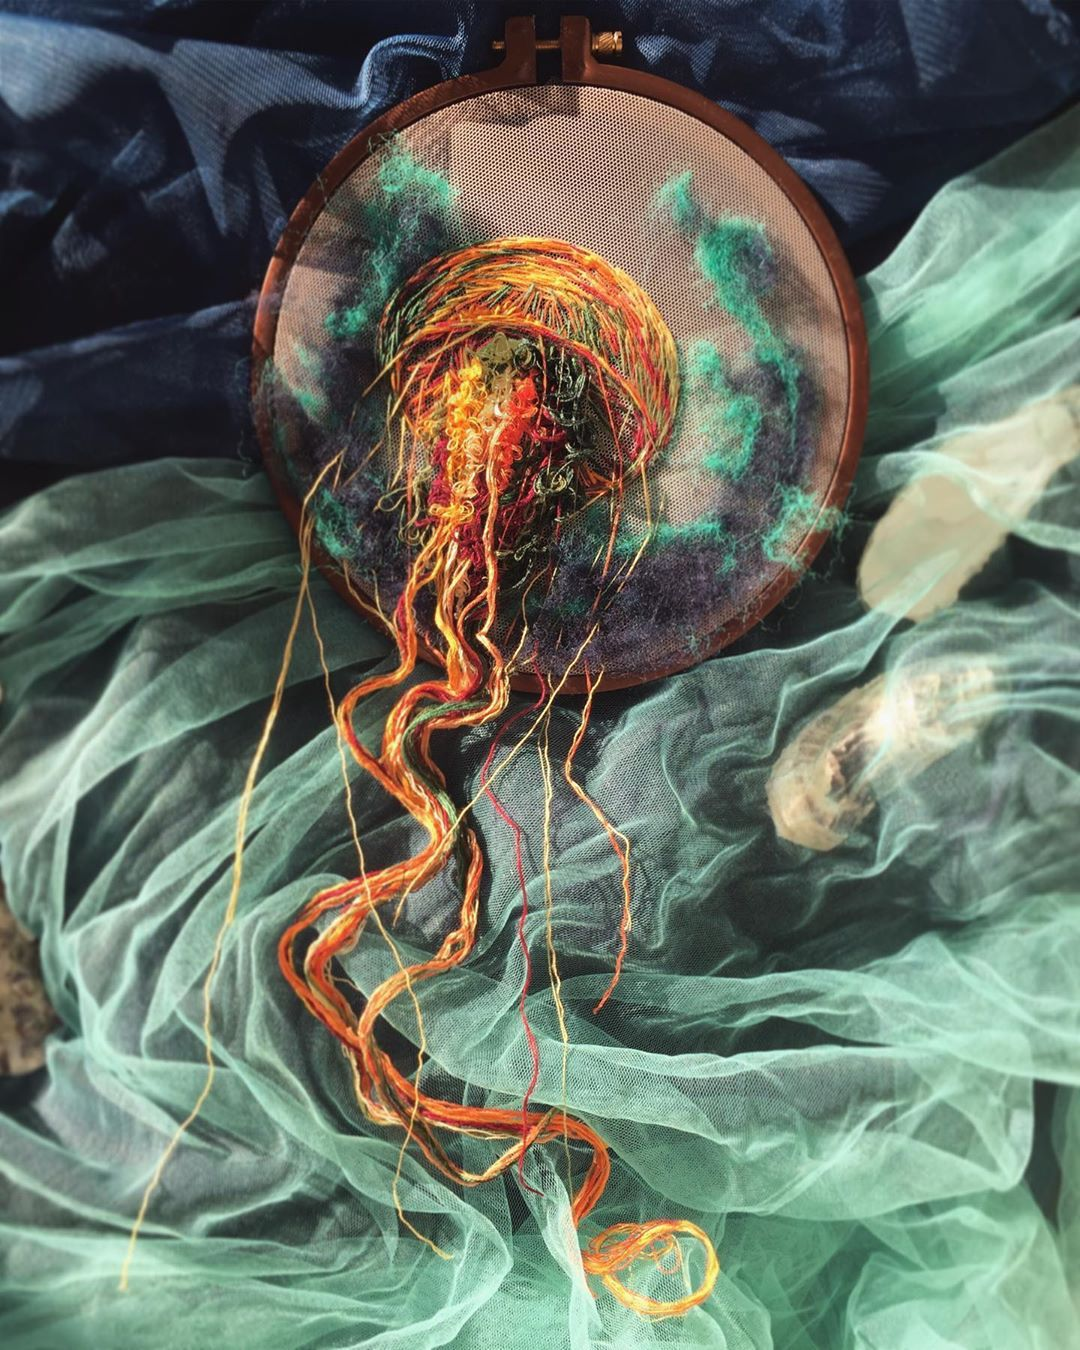 Embroidered Jellyfish Have Tendrils Extending Beyond the Hoop for the Fluidity of the Real Thing